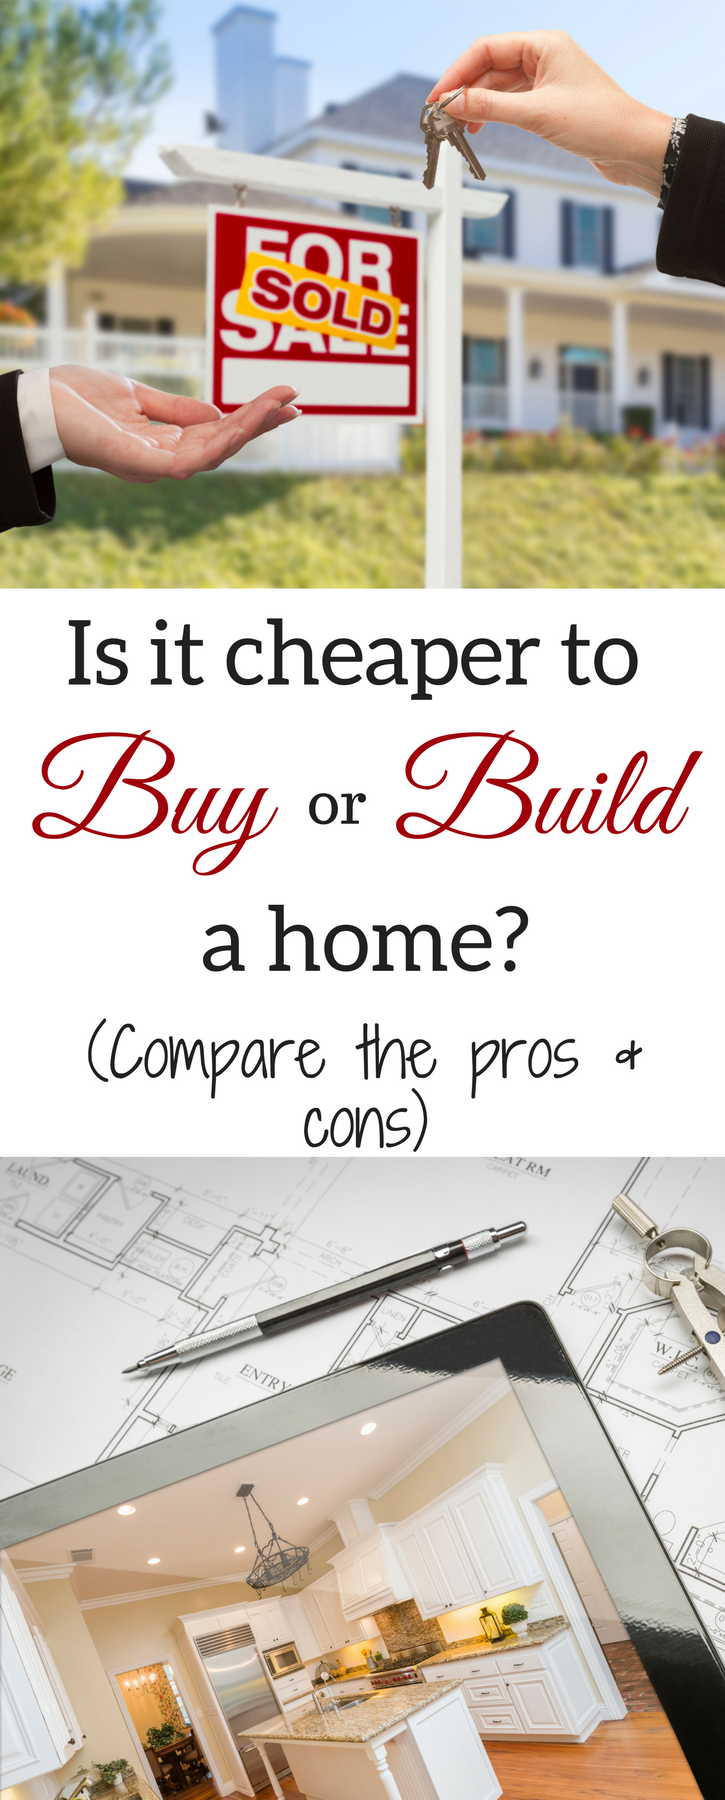 How Much Does It Cost To Build A House And Is It Cheaper To Buy Or Build Building A House Home Buying Buying First Home